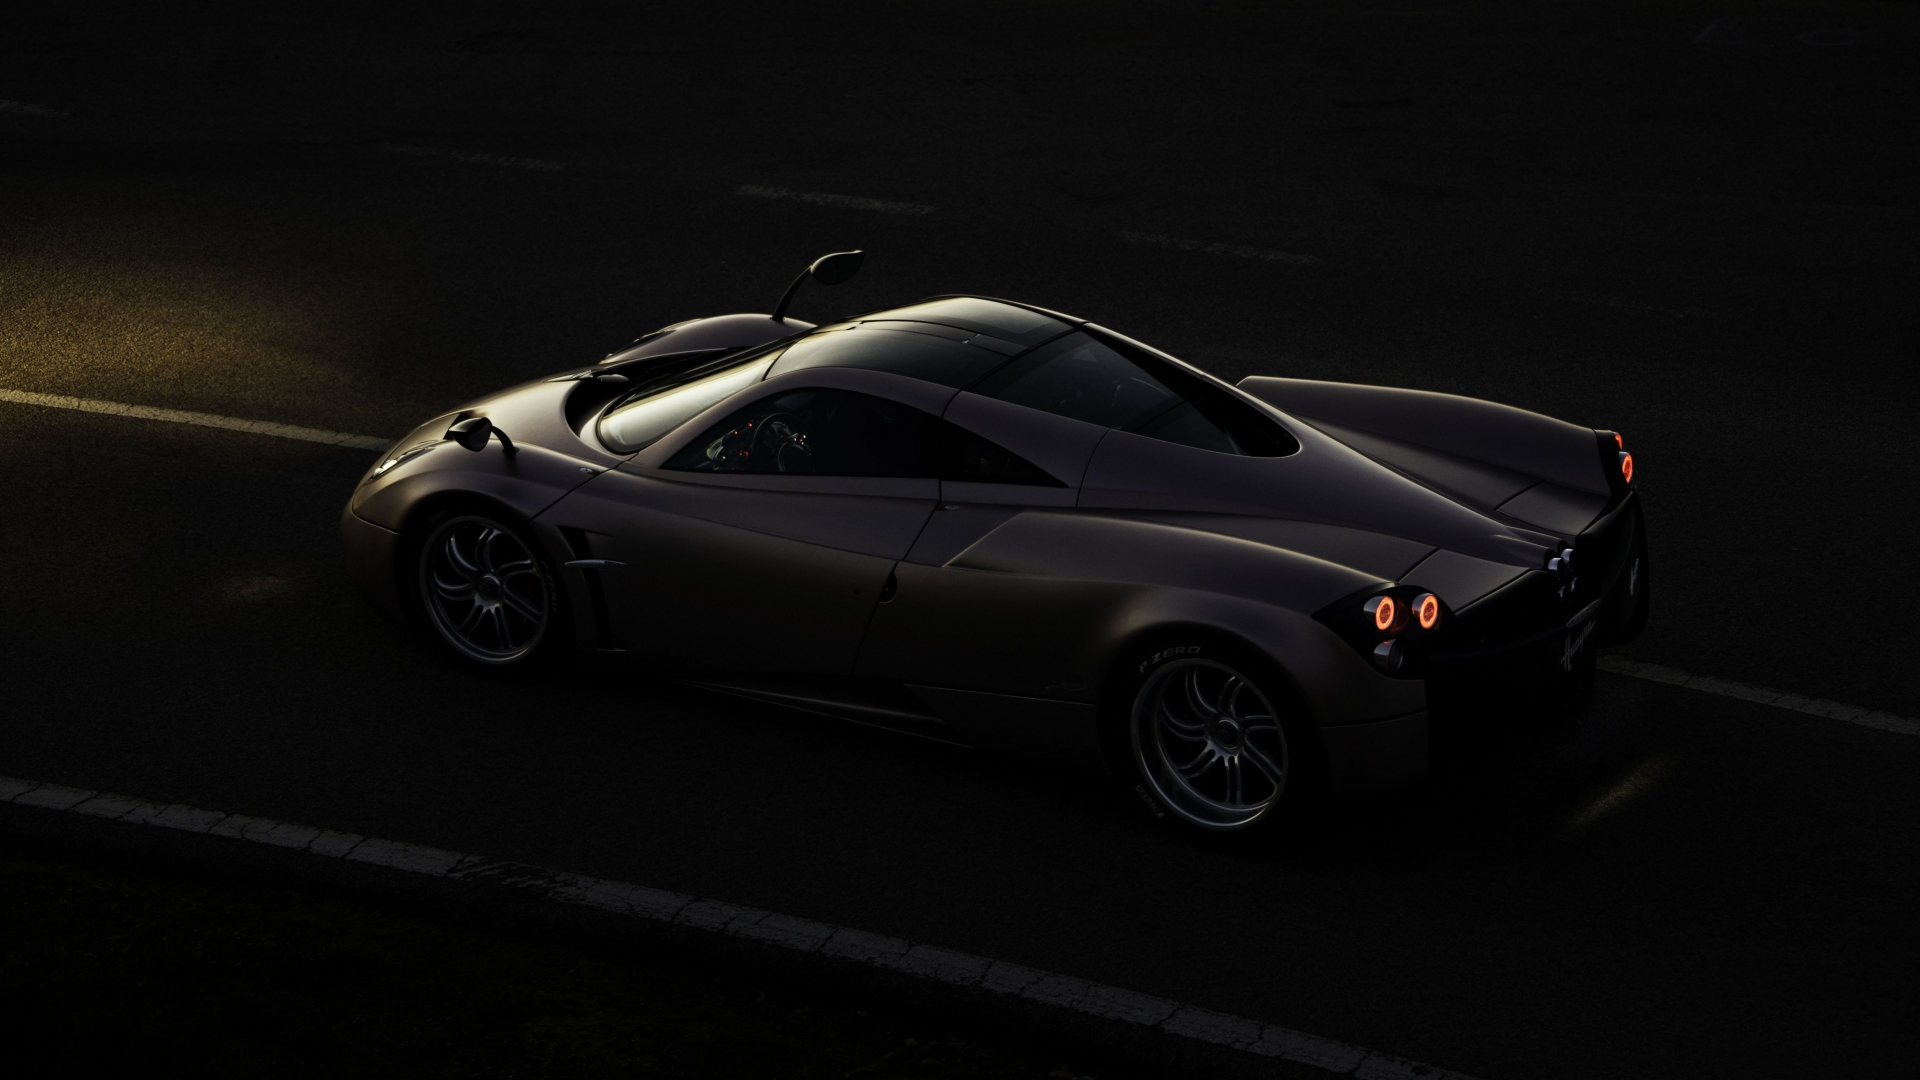 Pagani Huayra Hd Wallpaper 1920x1080 Pagani Huayra Hd Wallpaper 1920x1080